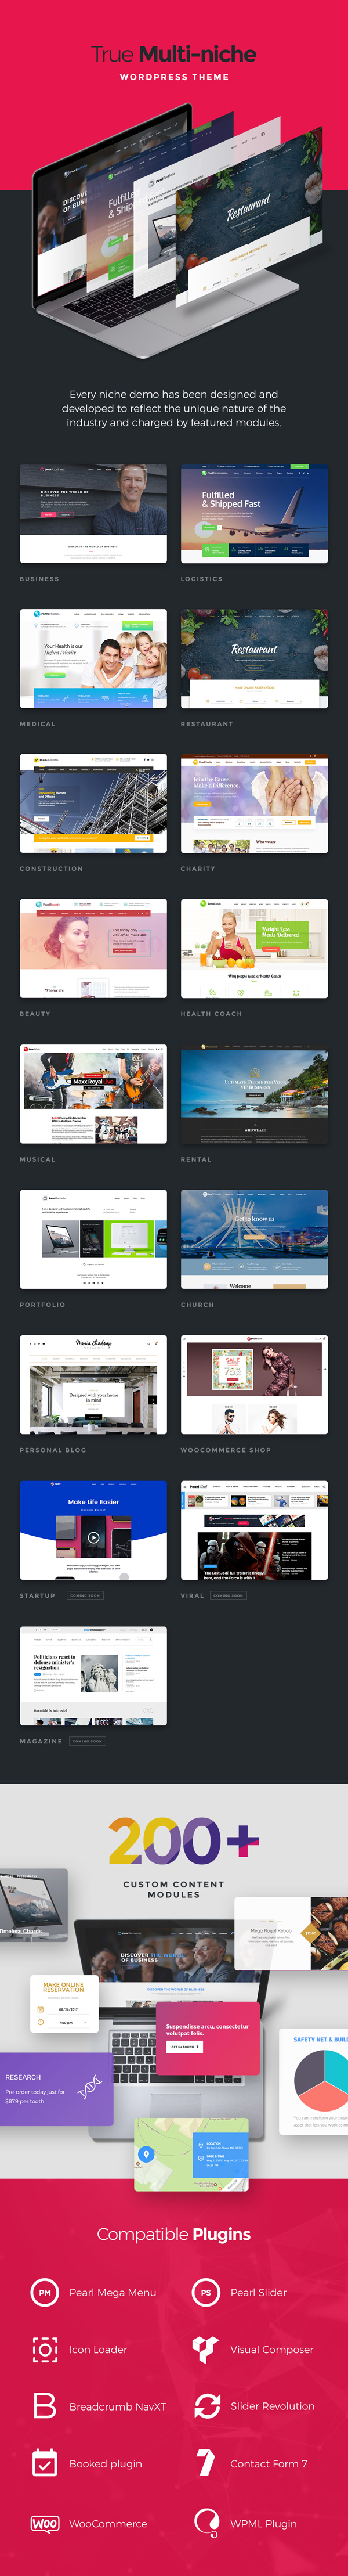 Pearl WP - Creative, Corporate, Business, Blog, Magazine, Shop, AMP WordPress Themes Bundle